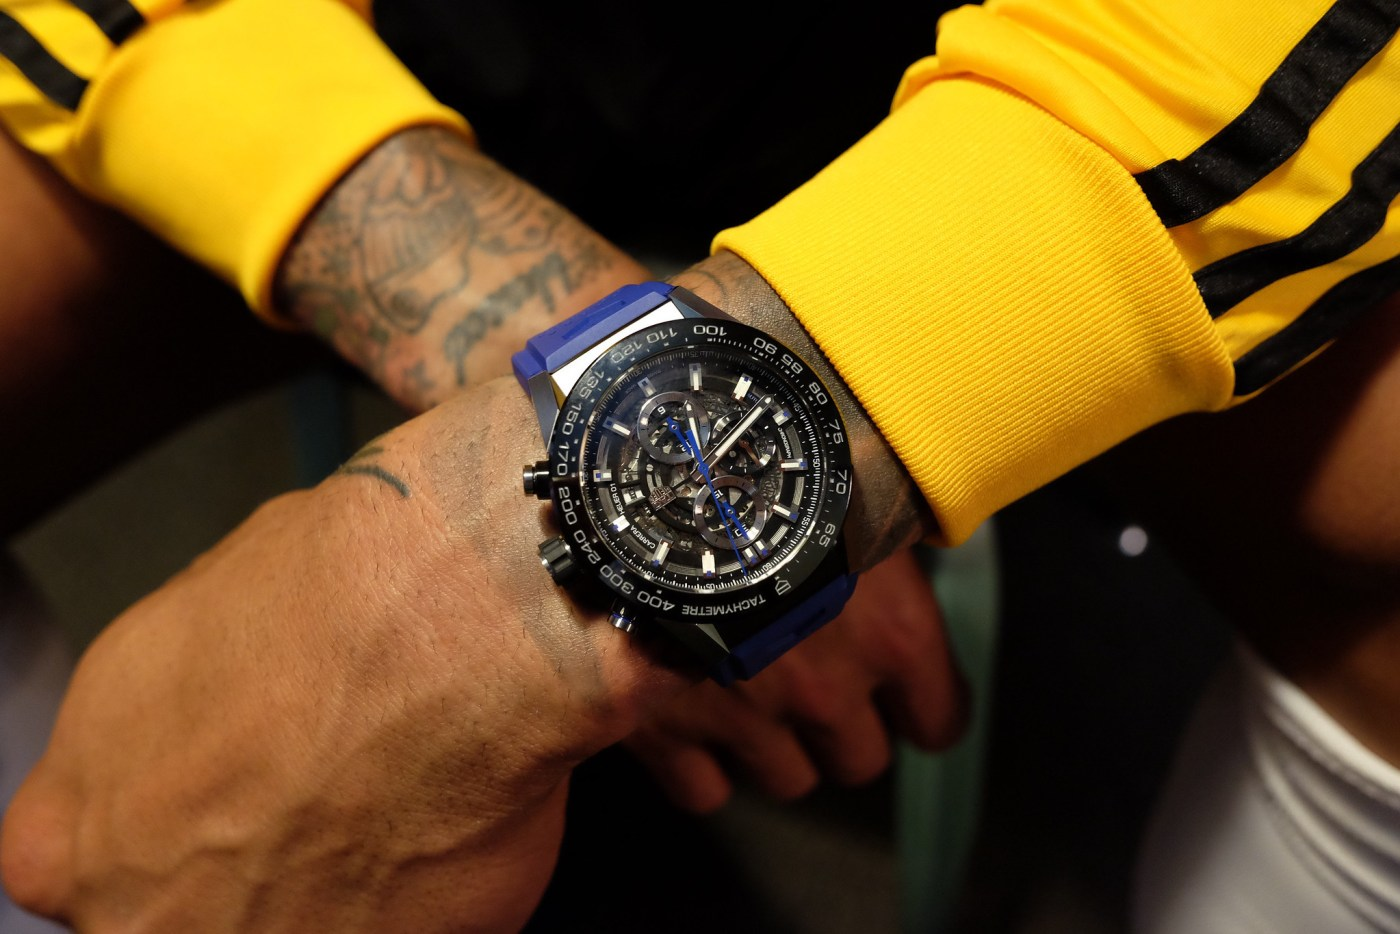 Tim Howard wristshot with his TAG Heuer Carrera